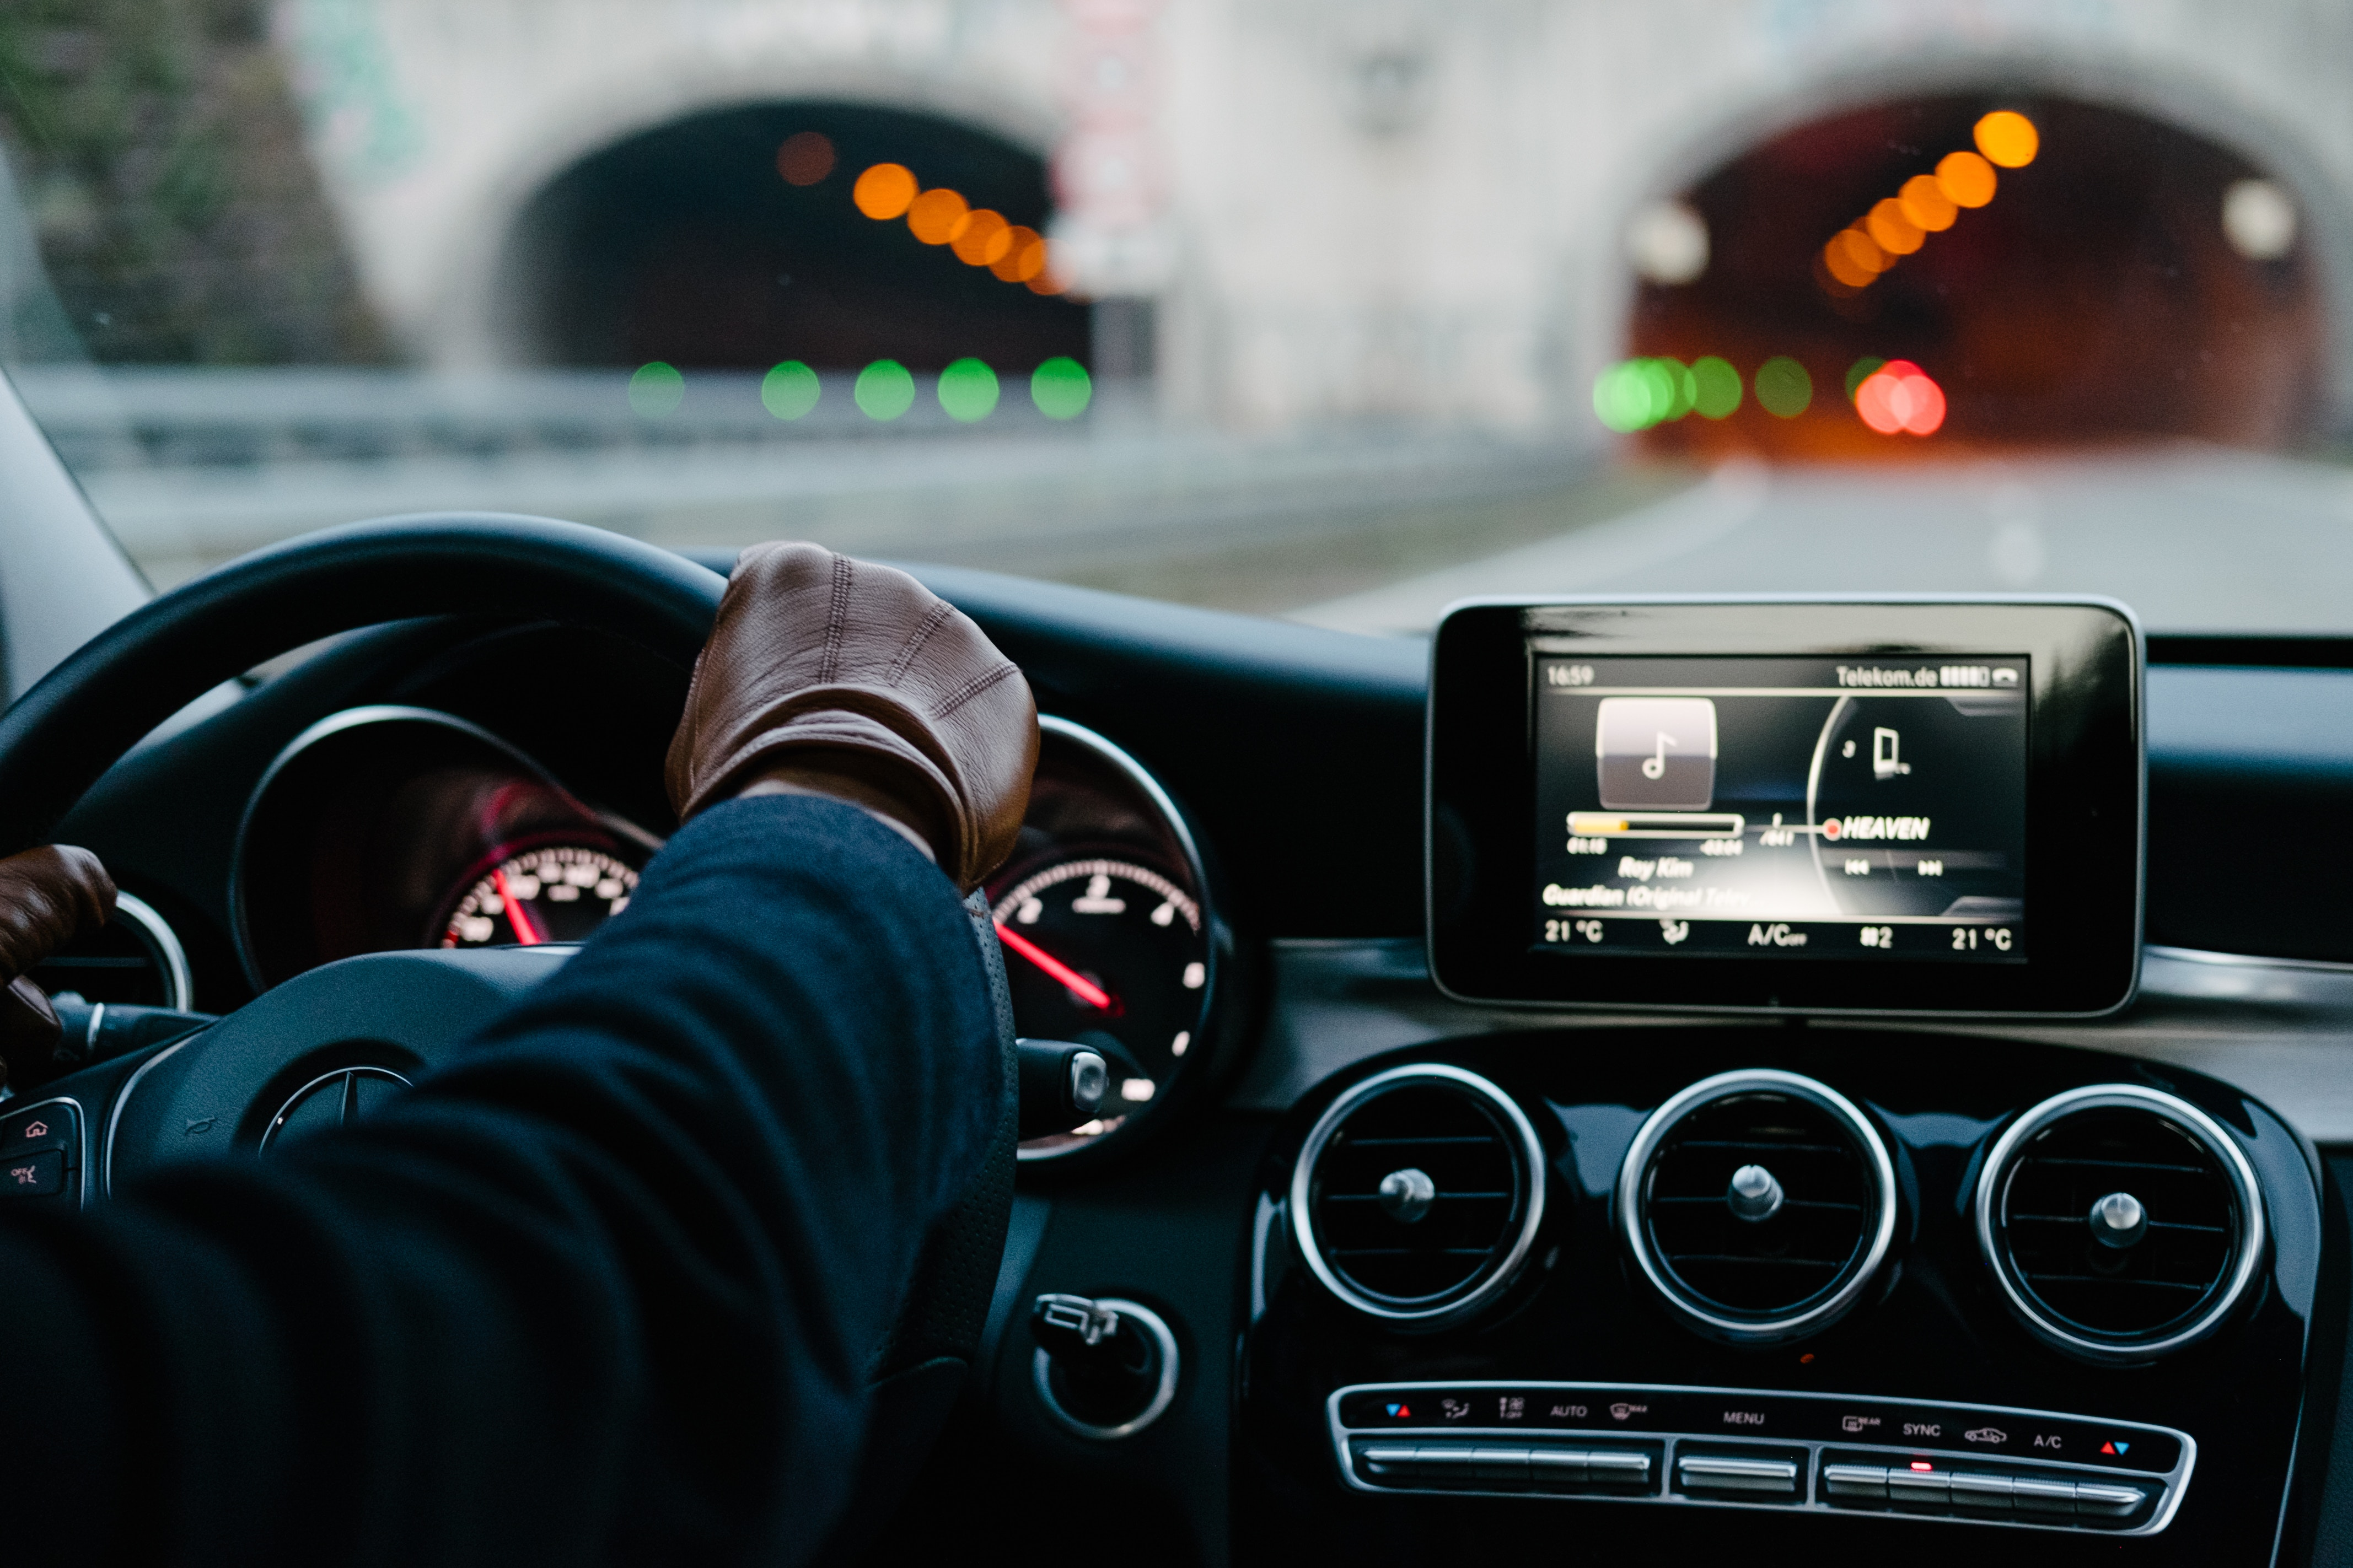 Dash Cams – Worth Having for Car Accidents?